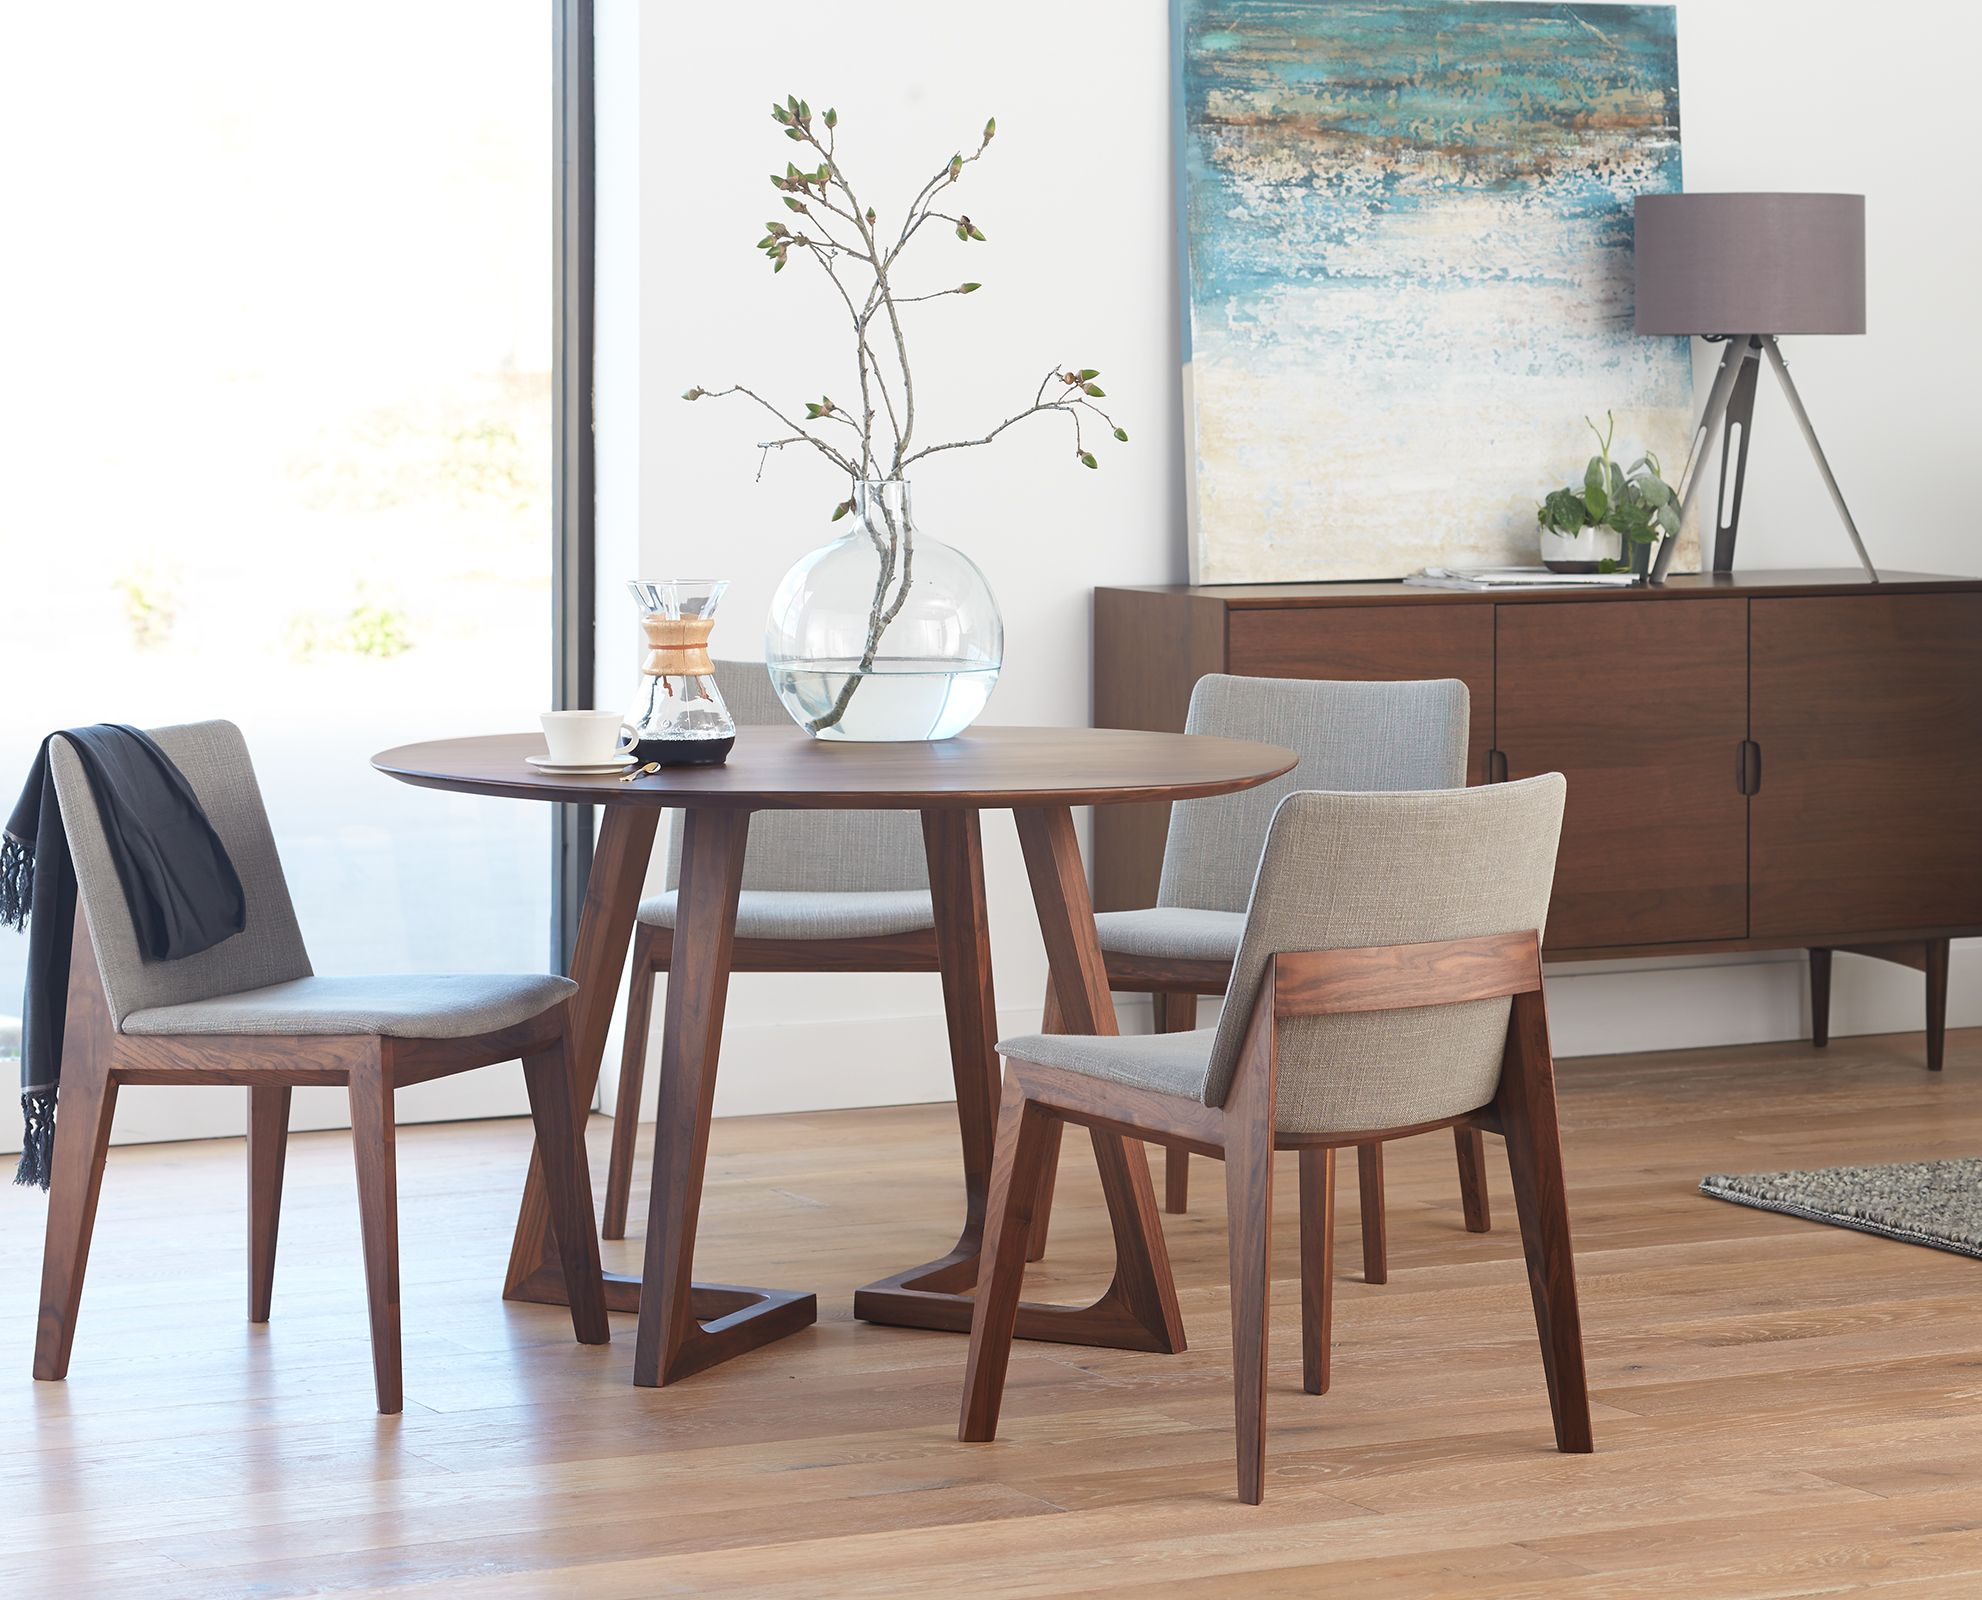 Round table and chairs from dania condo pinterest for Dining table design modern